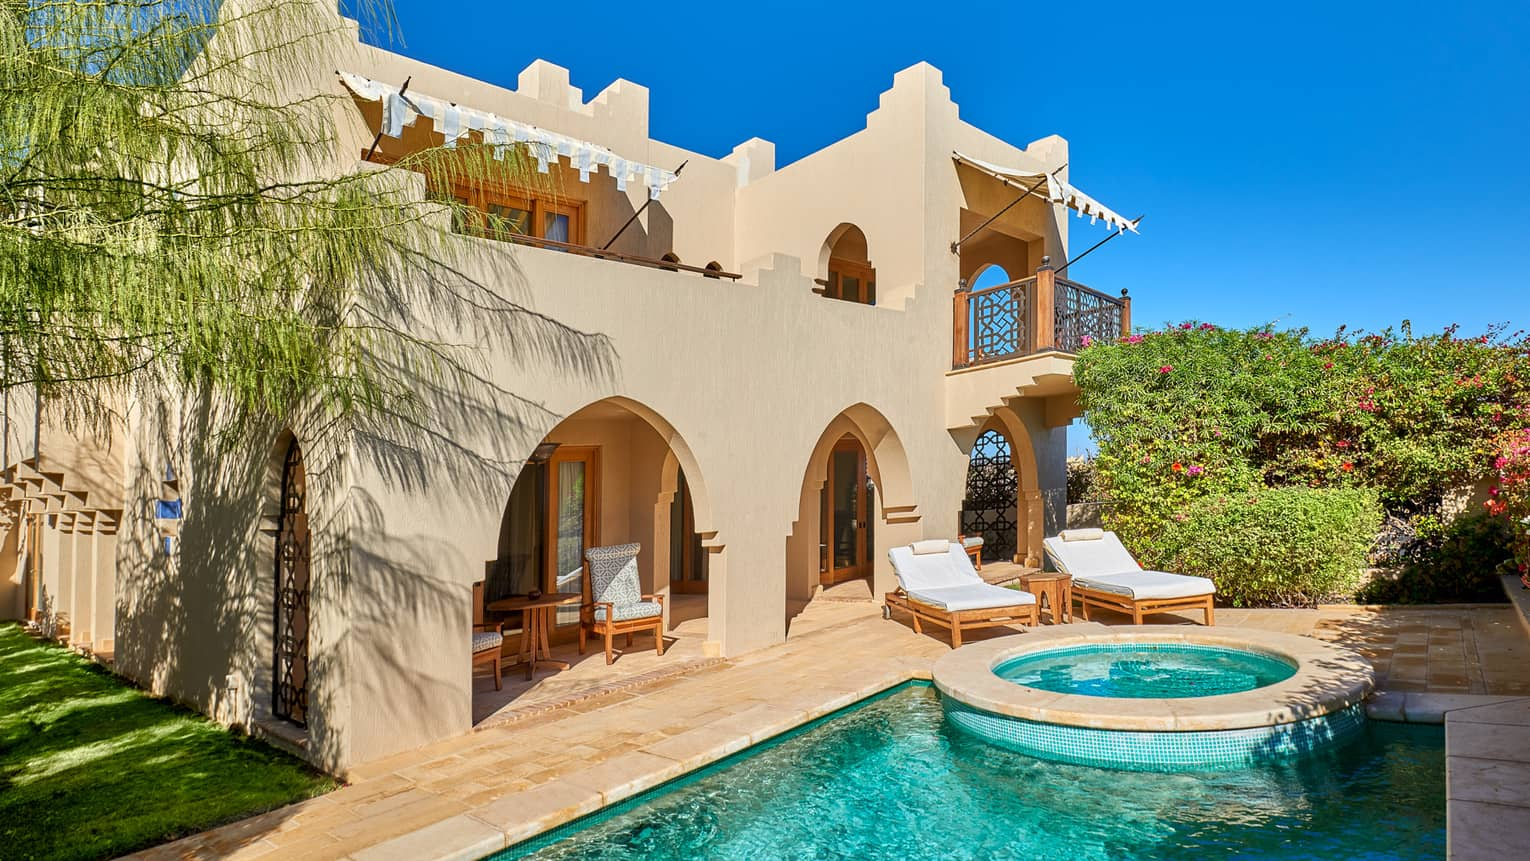 Exterior view of four bedroom villa and private pool against blue sky